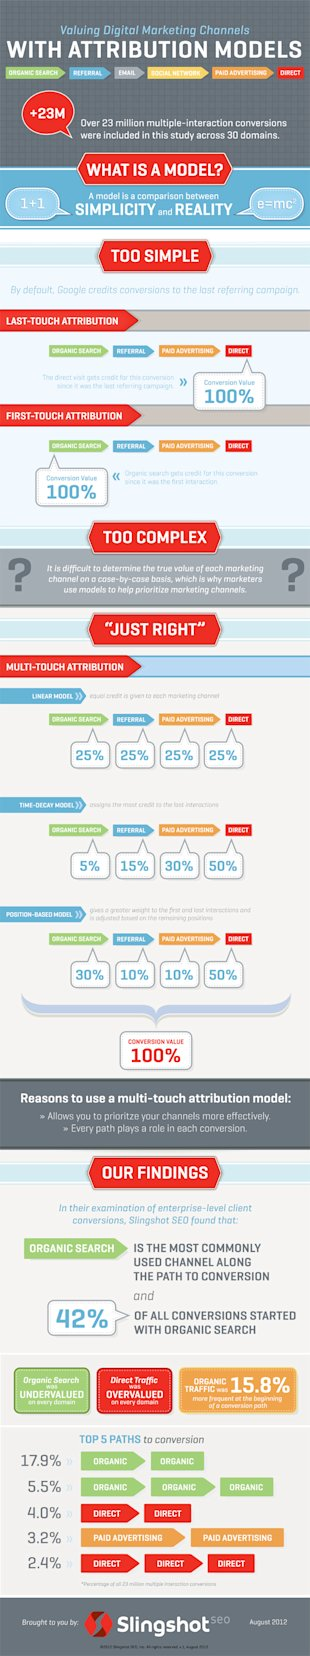 Google Analytics: Multi Channel Funnel Reporting image mcf infographic